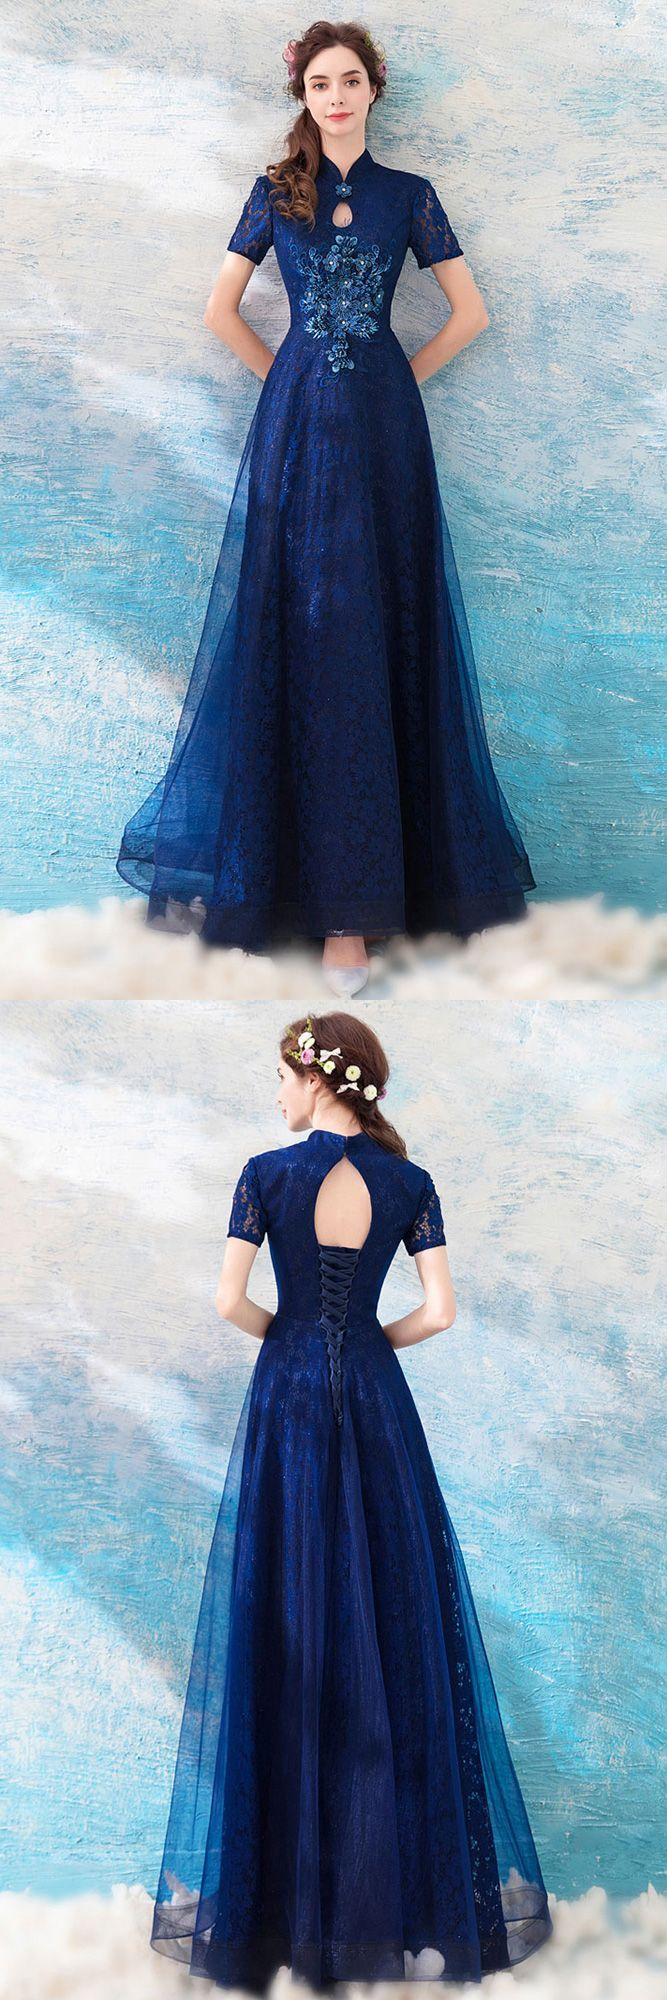 Elegant Navy Blue A Line Tulle Formal Party Dress With Short Sleeves Wholesale #T69234 – GemGrace.com